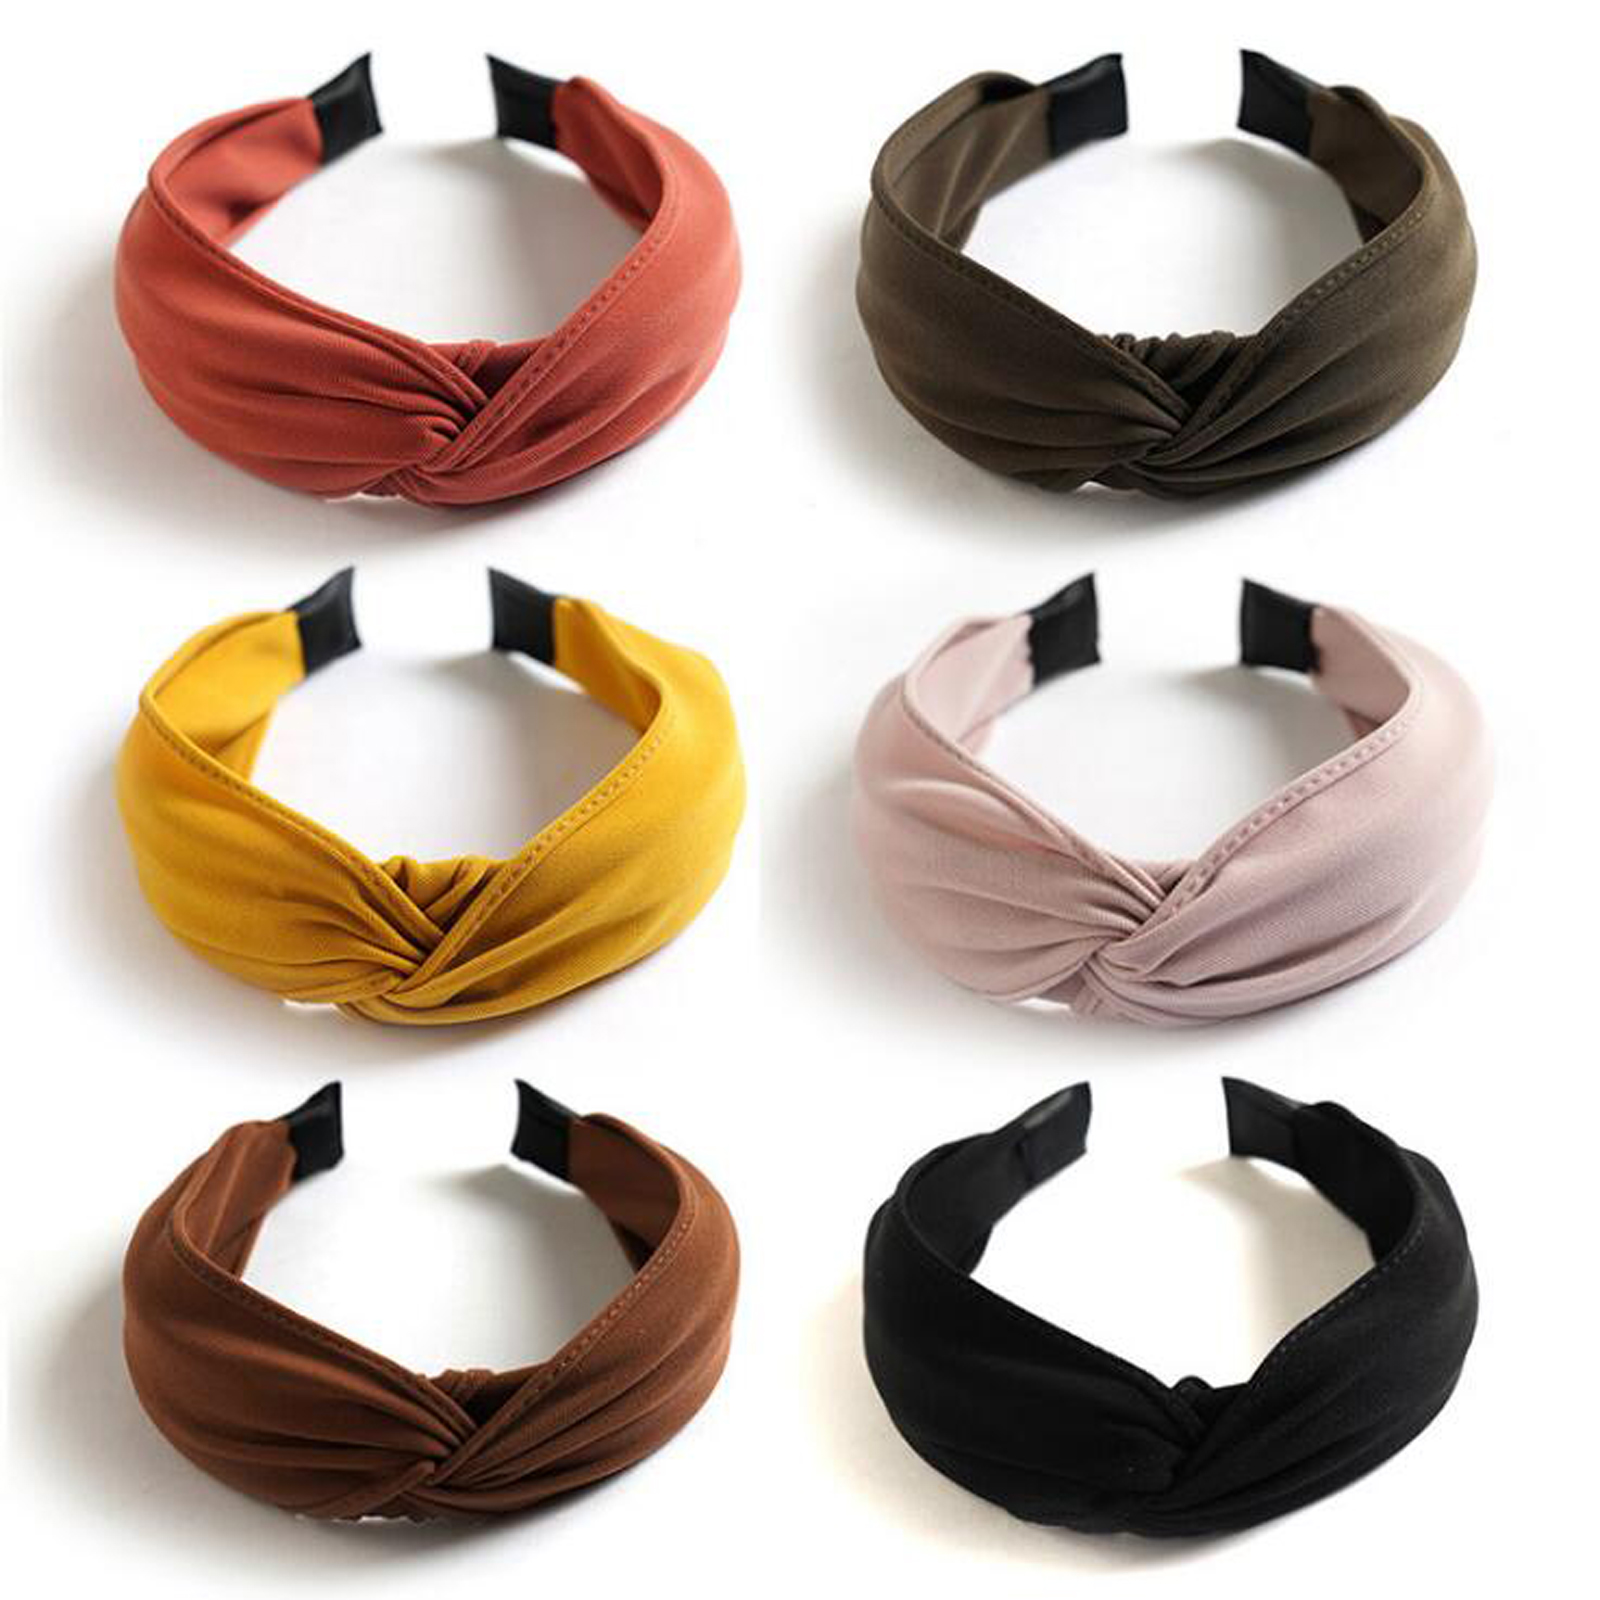 New Arrival Women's Headband Wholesale Classic Solid Hairband Turban Cross Knot Hair Accessories High Quality Hair Hoop